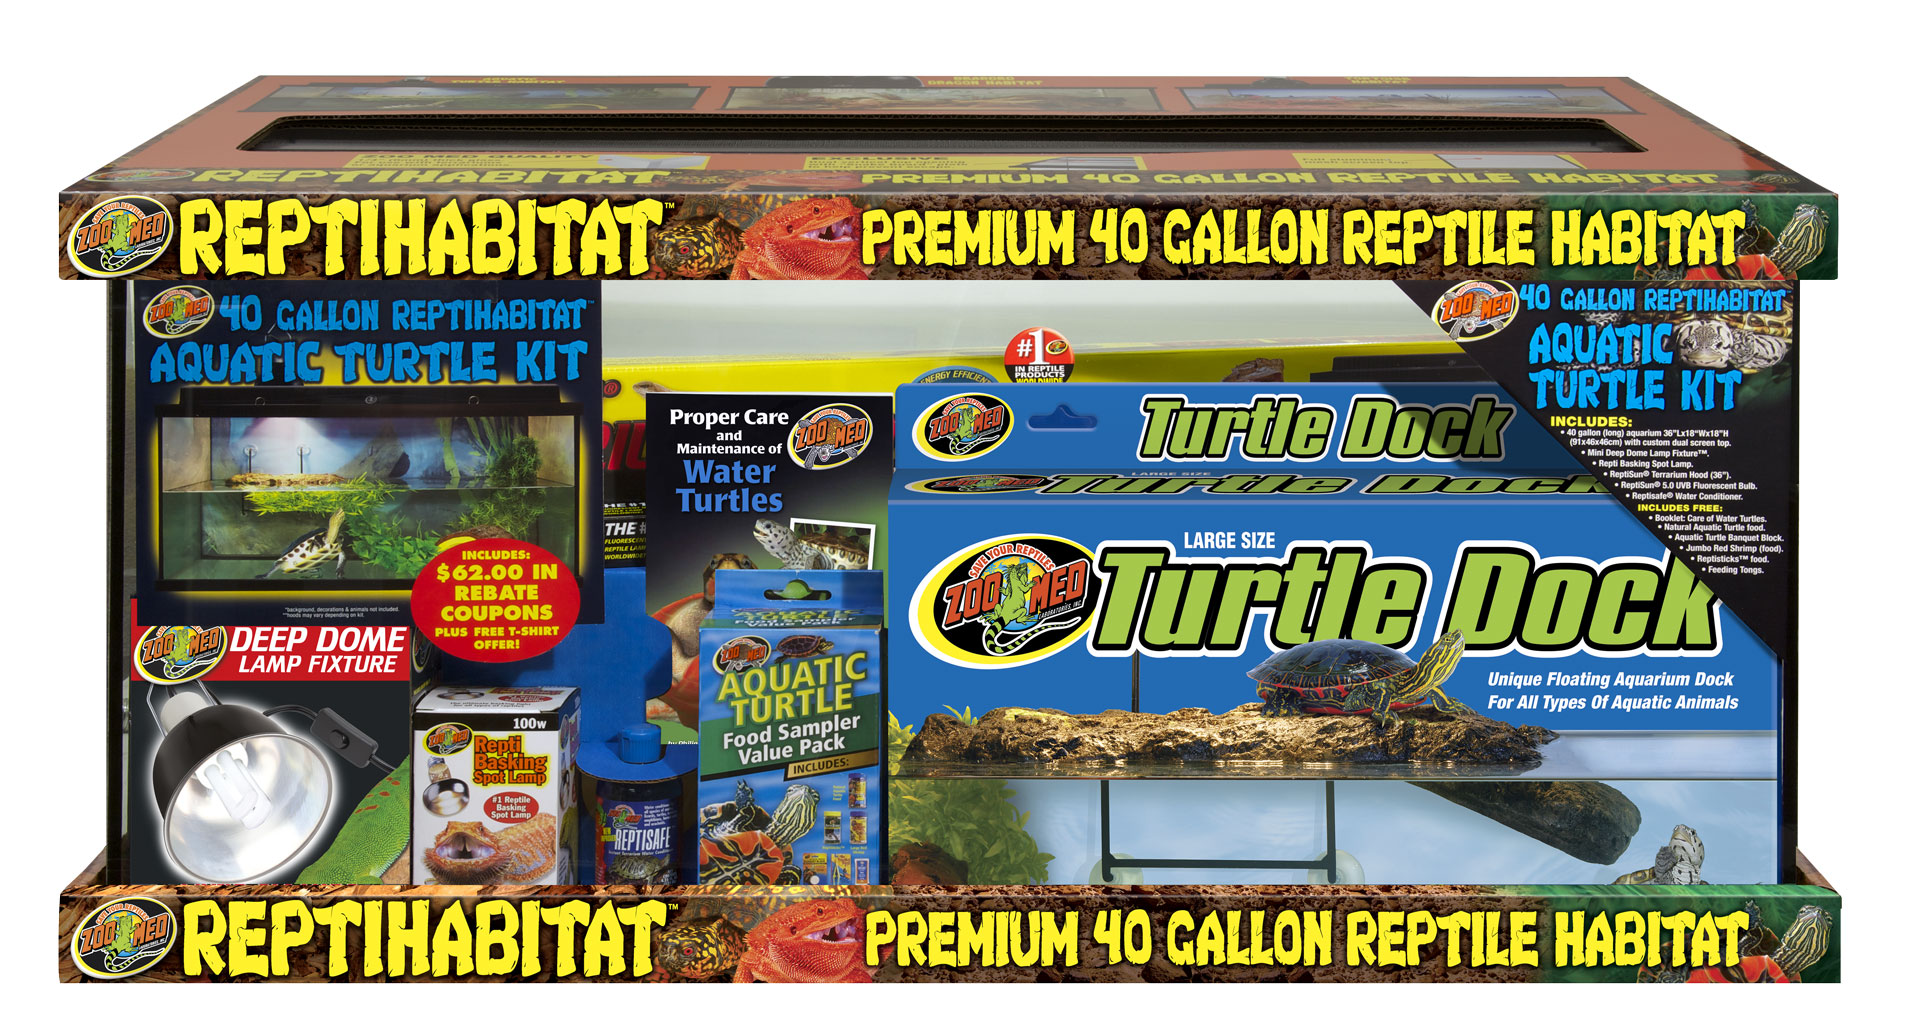 40 Gallon Reptihabitat Aquatic Turtle Kit Zoo Med